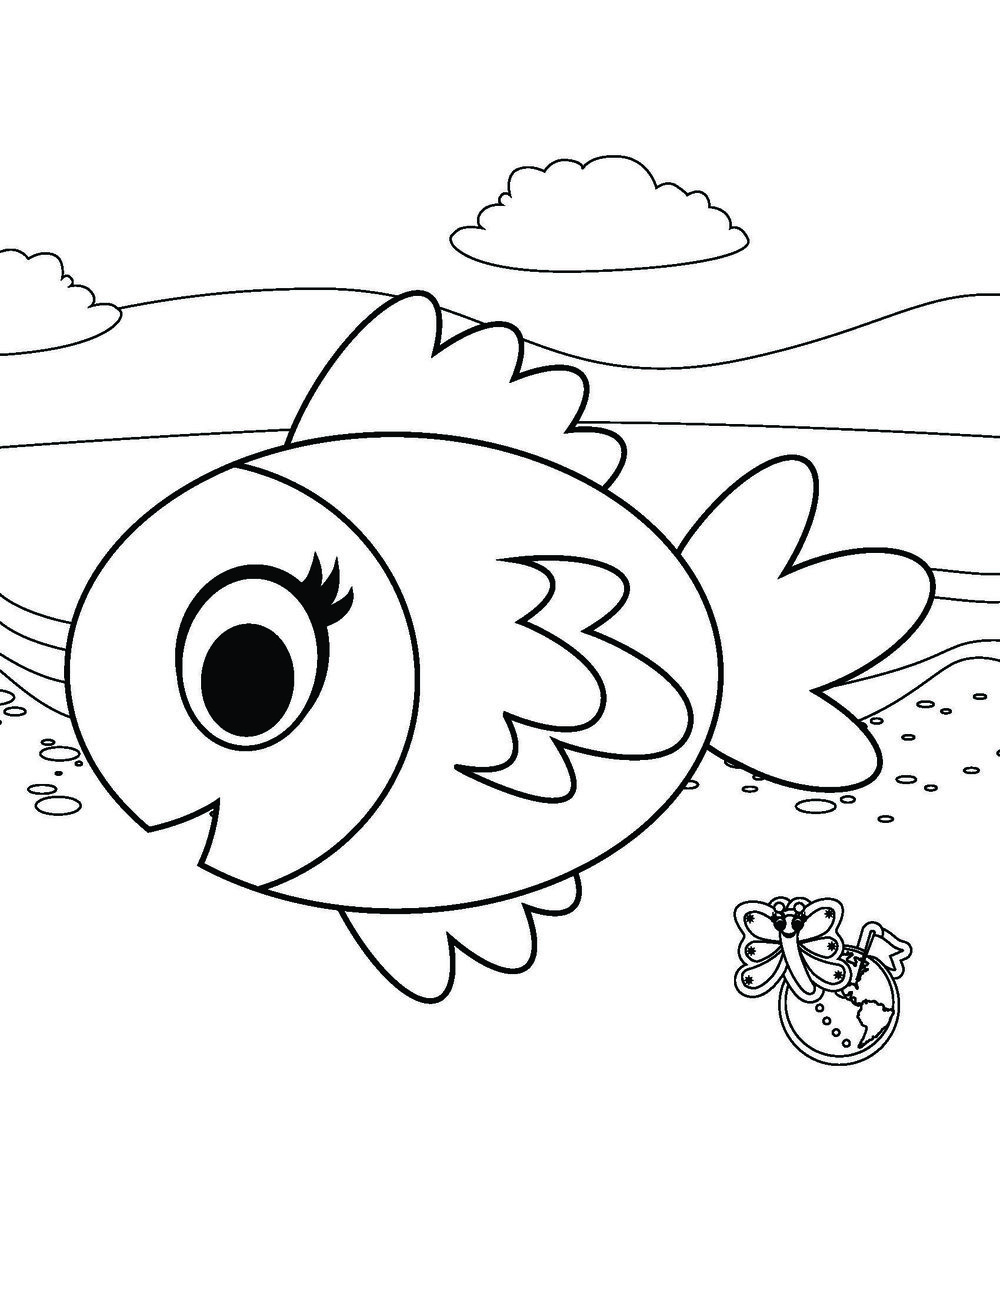 Mirabelle the Fish